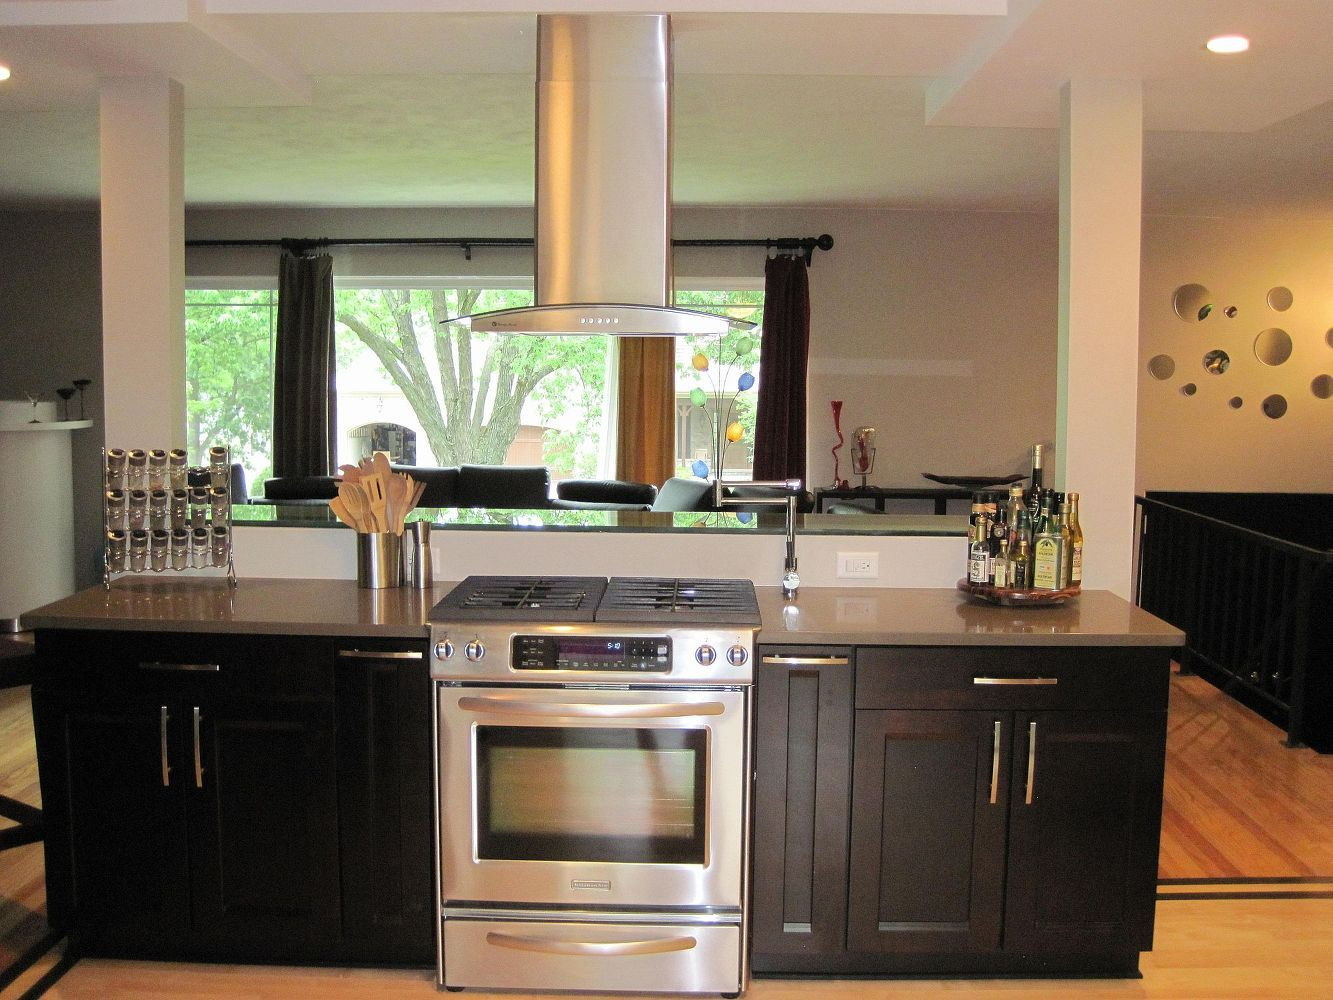 Kitchen Remodel Home Decor Home Improvement Kitchen Design Amusing 2 Wall Kitchen Designs Design Ideas